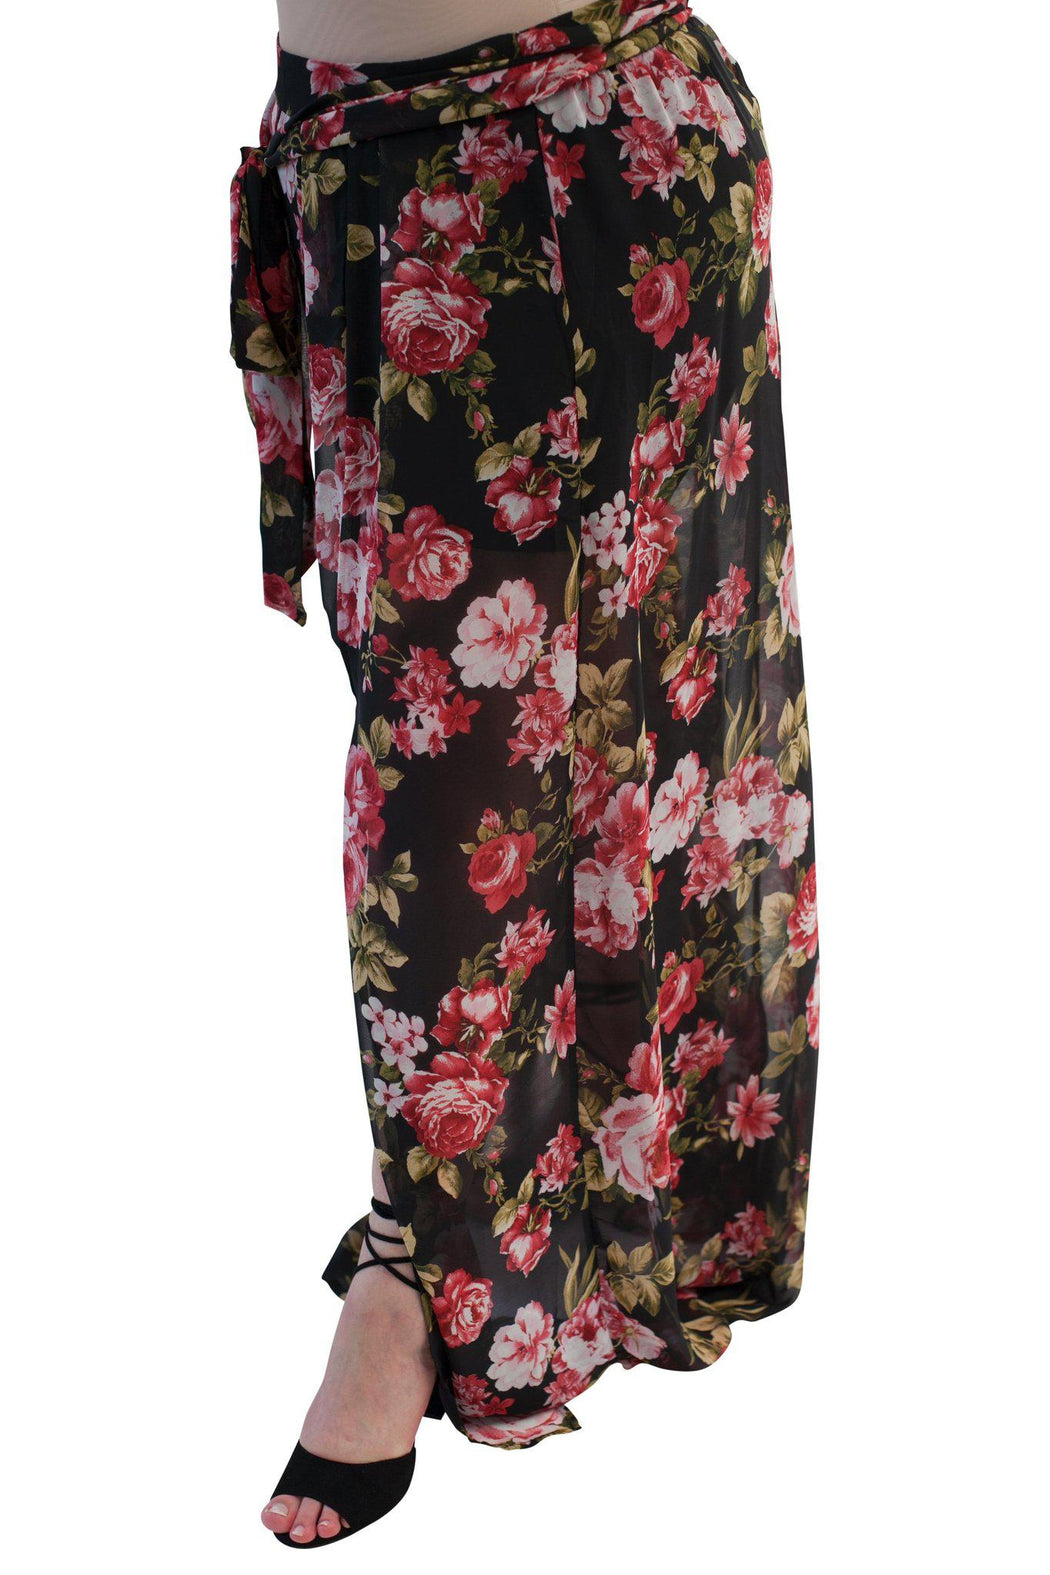 PRIMROSE black floral chiffon maxi skirt side view